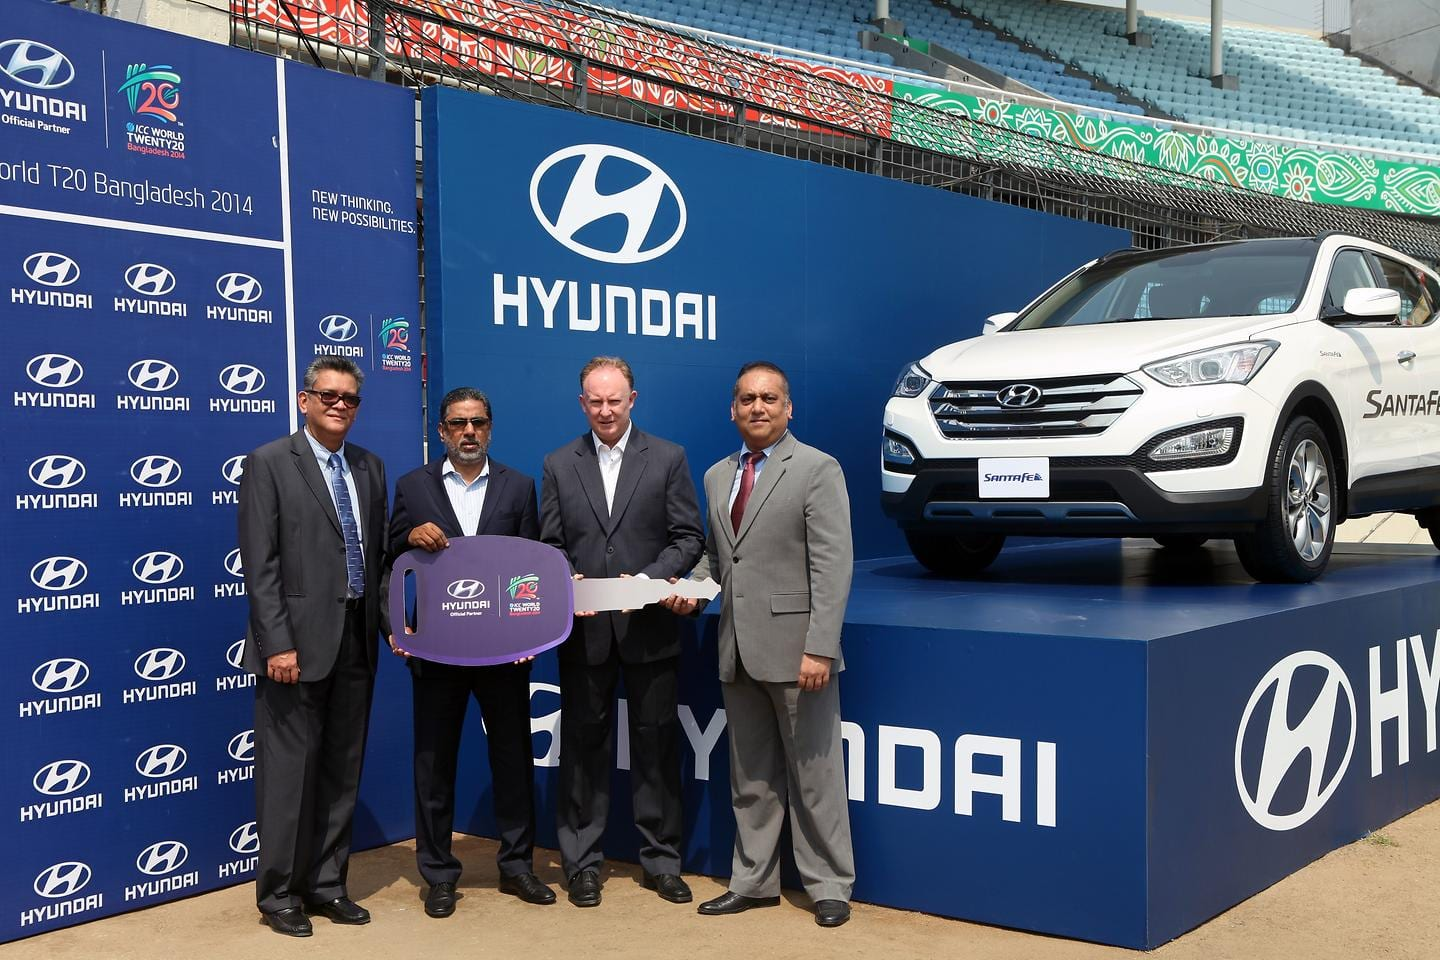 Hyundai Motor Company Takes Part in the ICC World T20 Bangladesh 2014